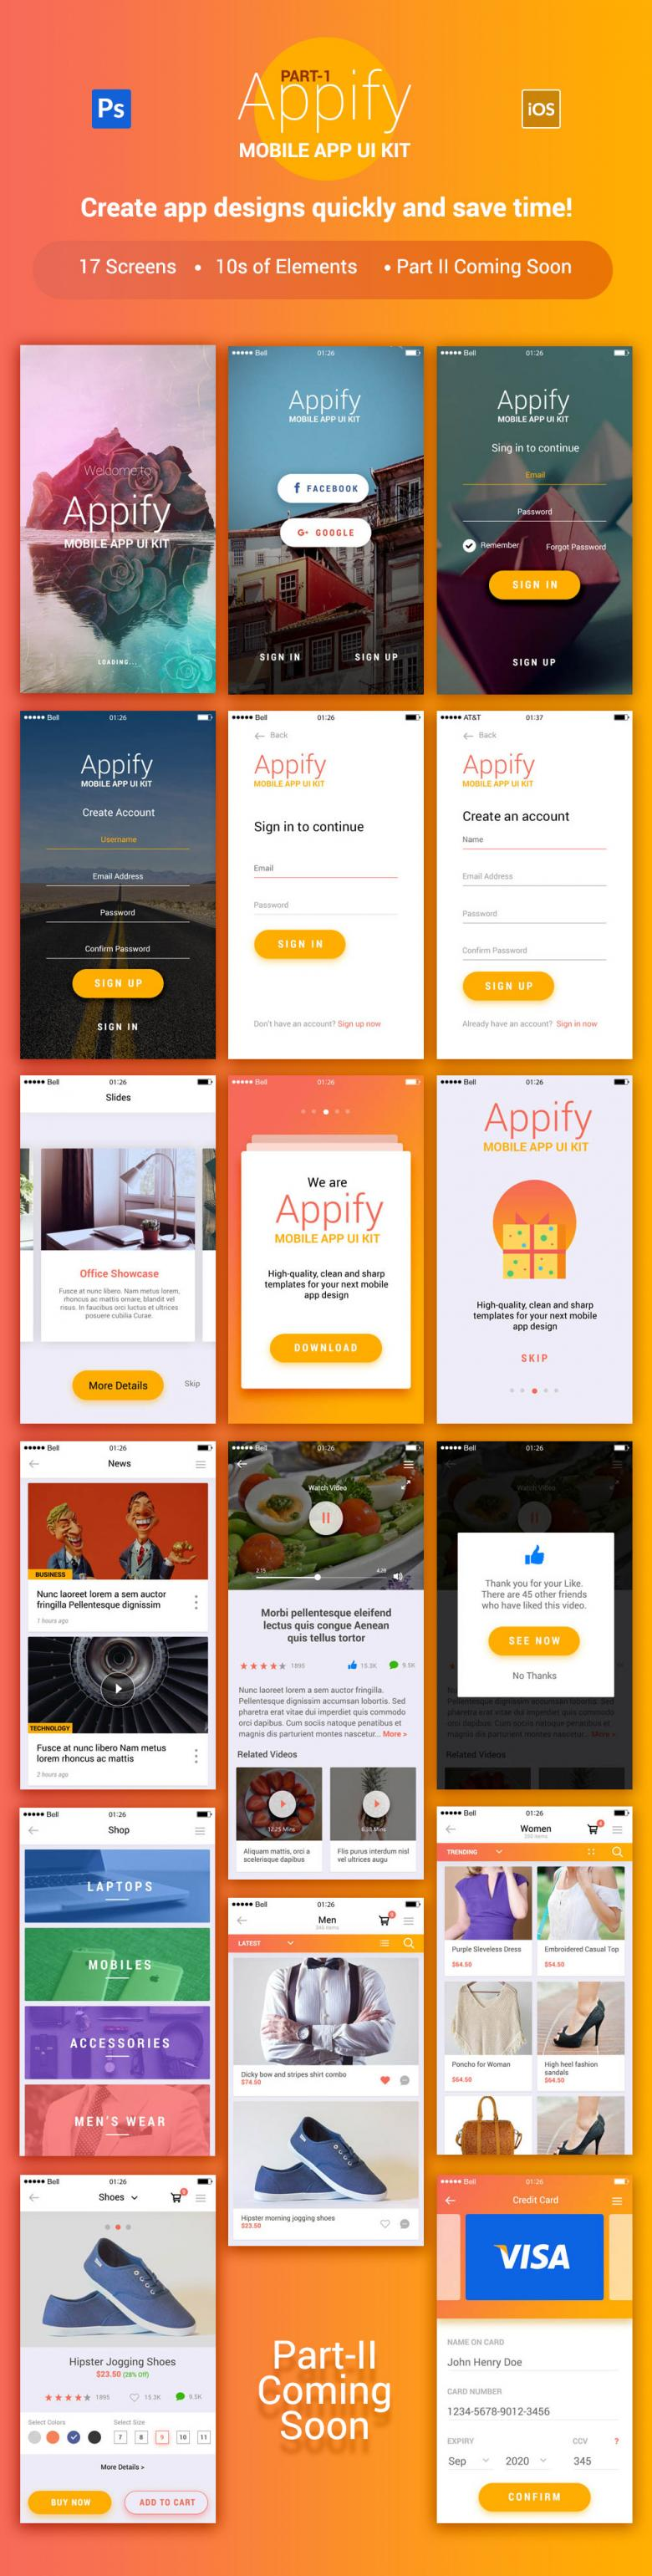 Appify Mobile UI Kit